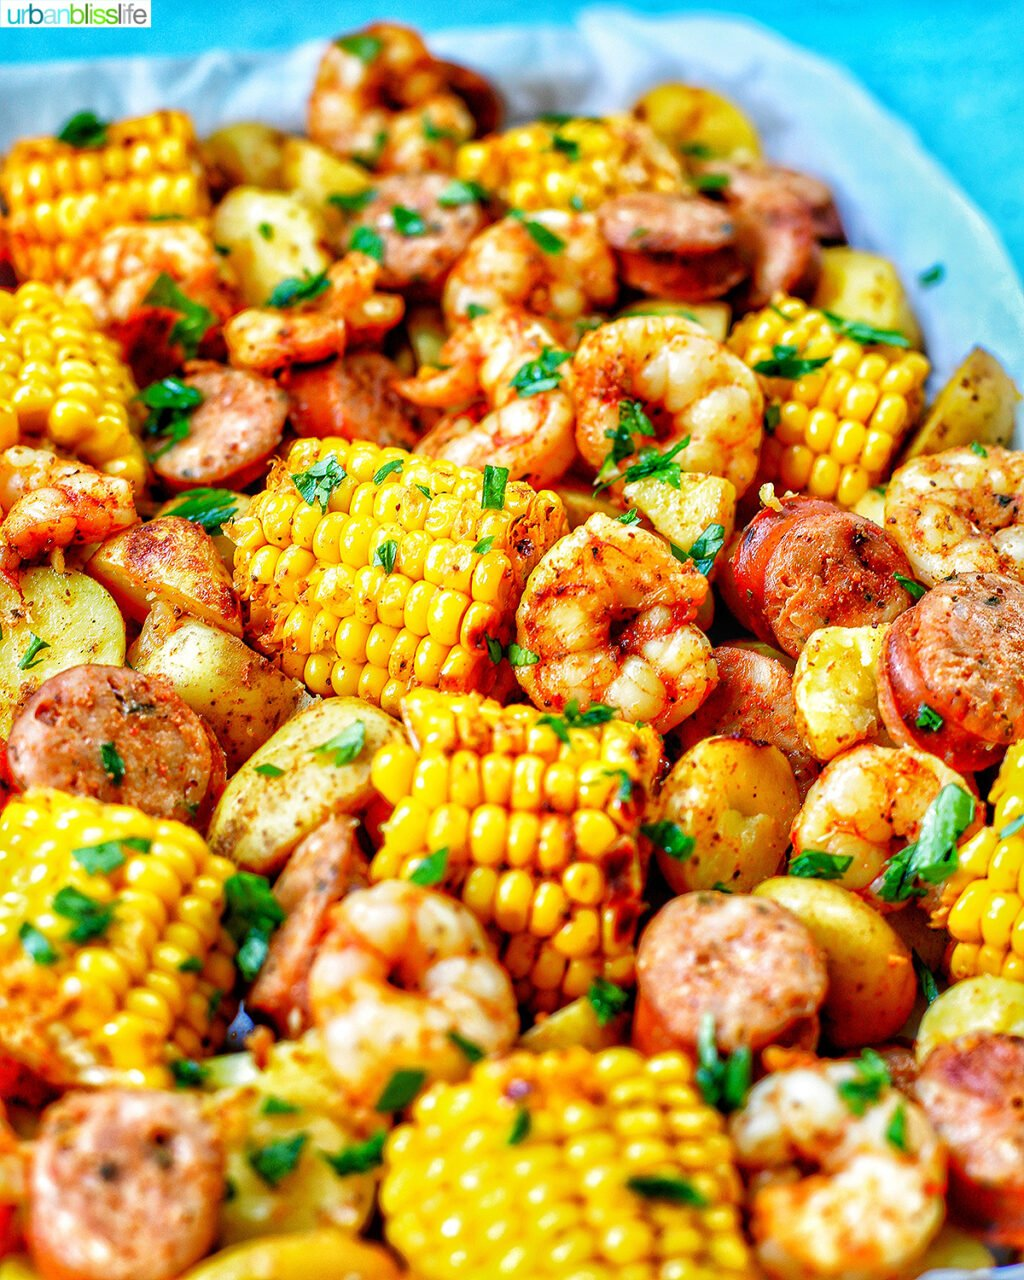 tray of seafood, corn, sausage low country boil with blue background